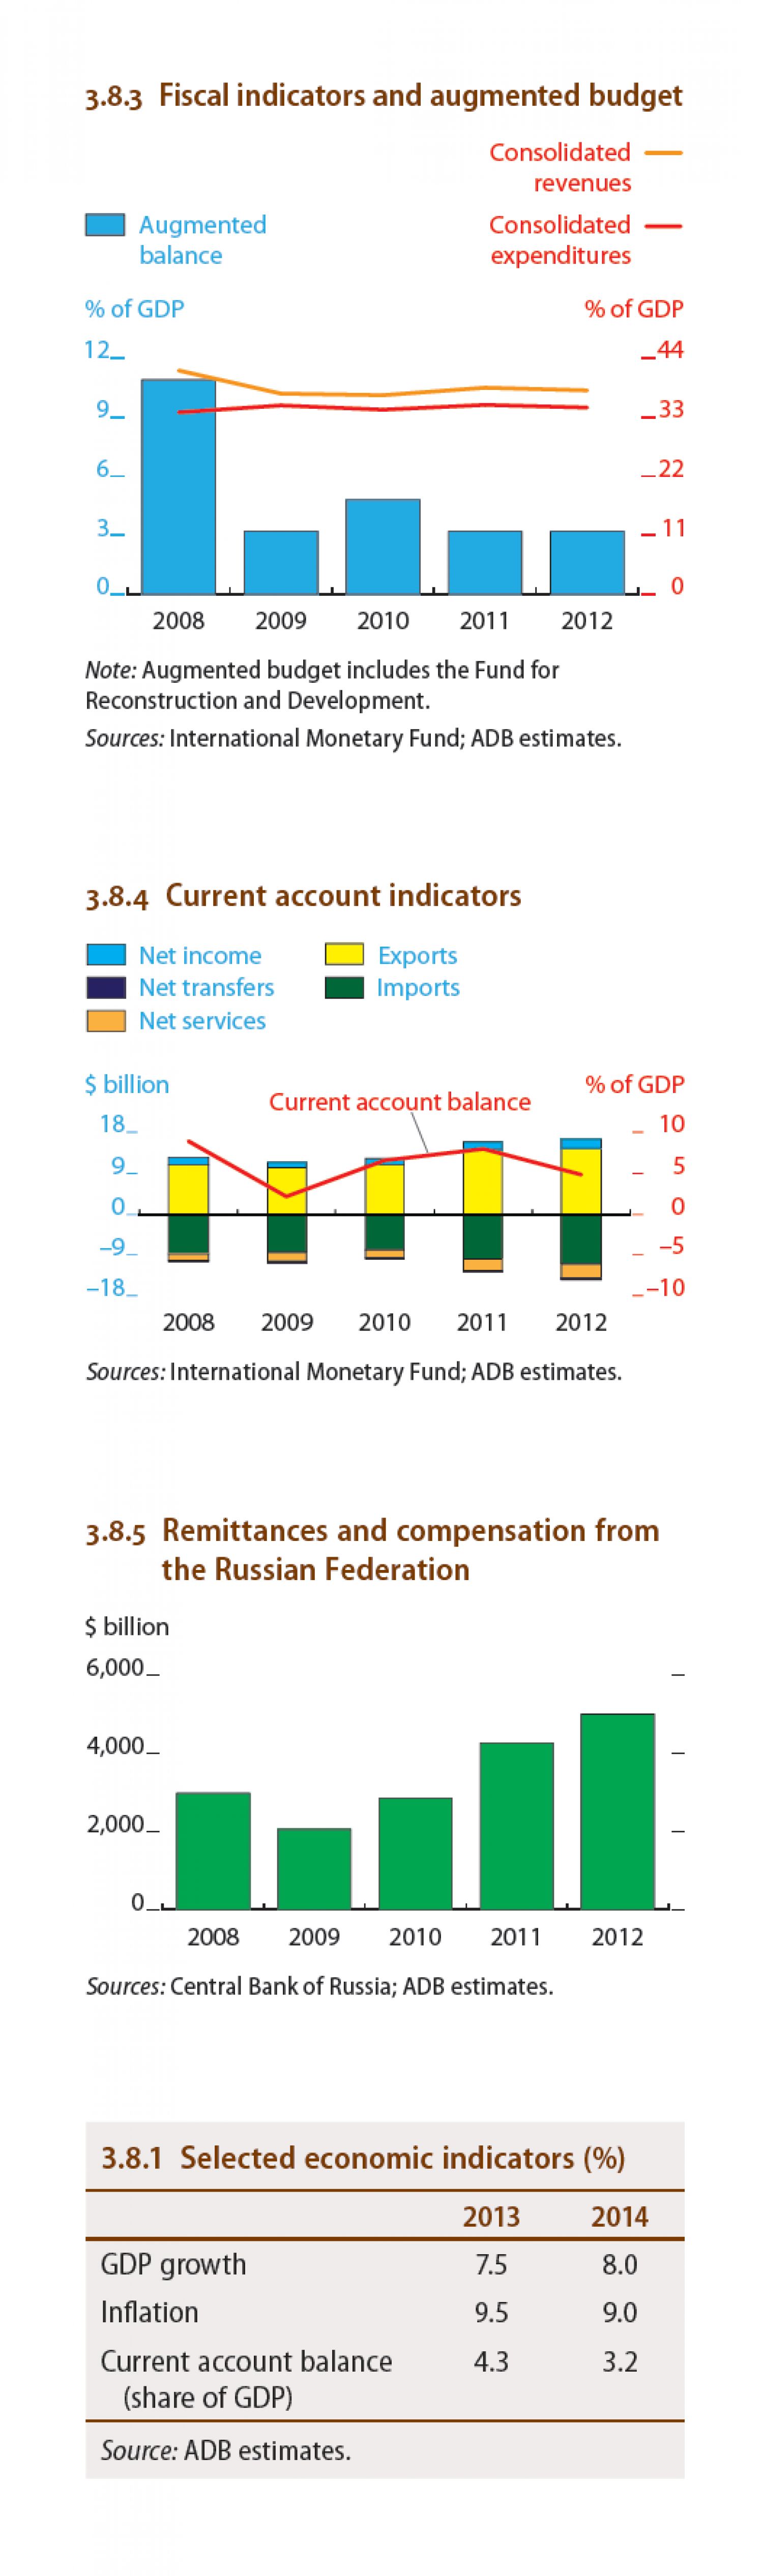 Uzbekistan - Fiscal indicators and augmented budget Infographic